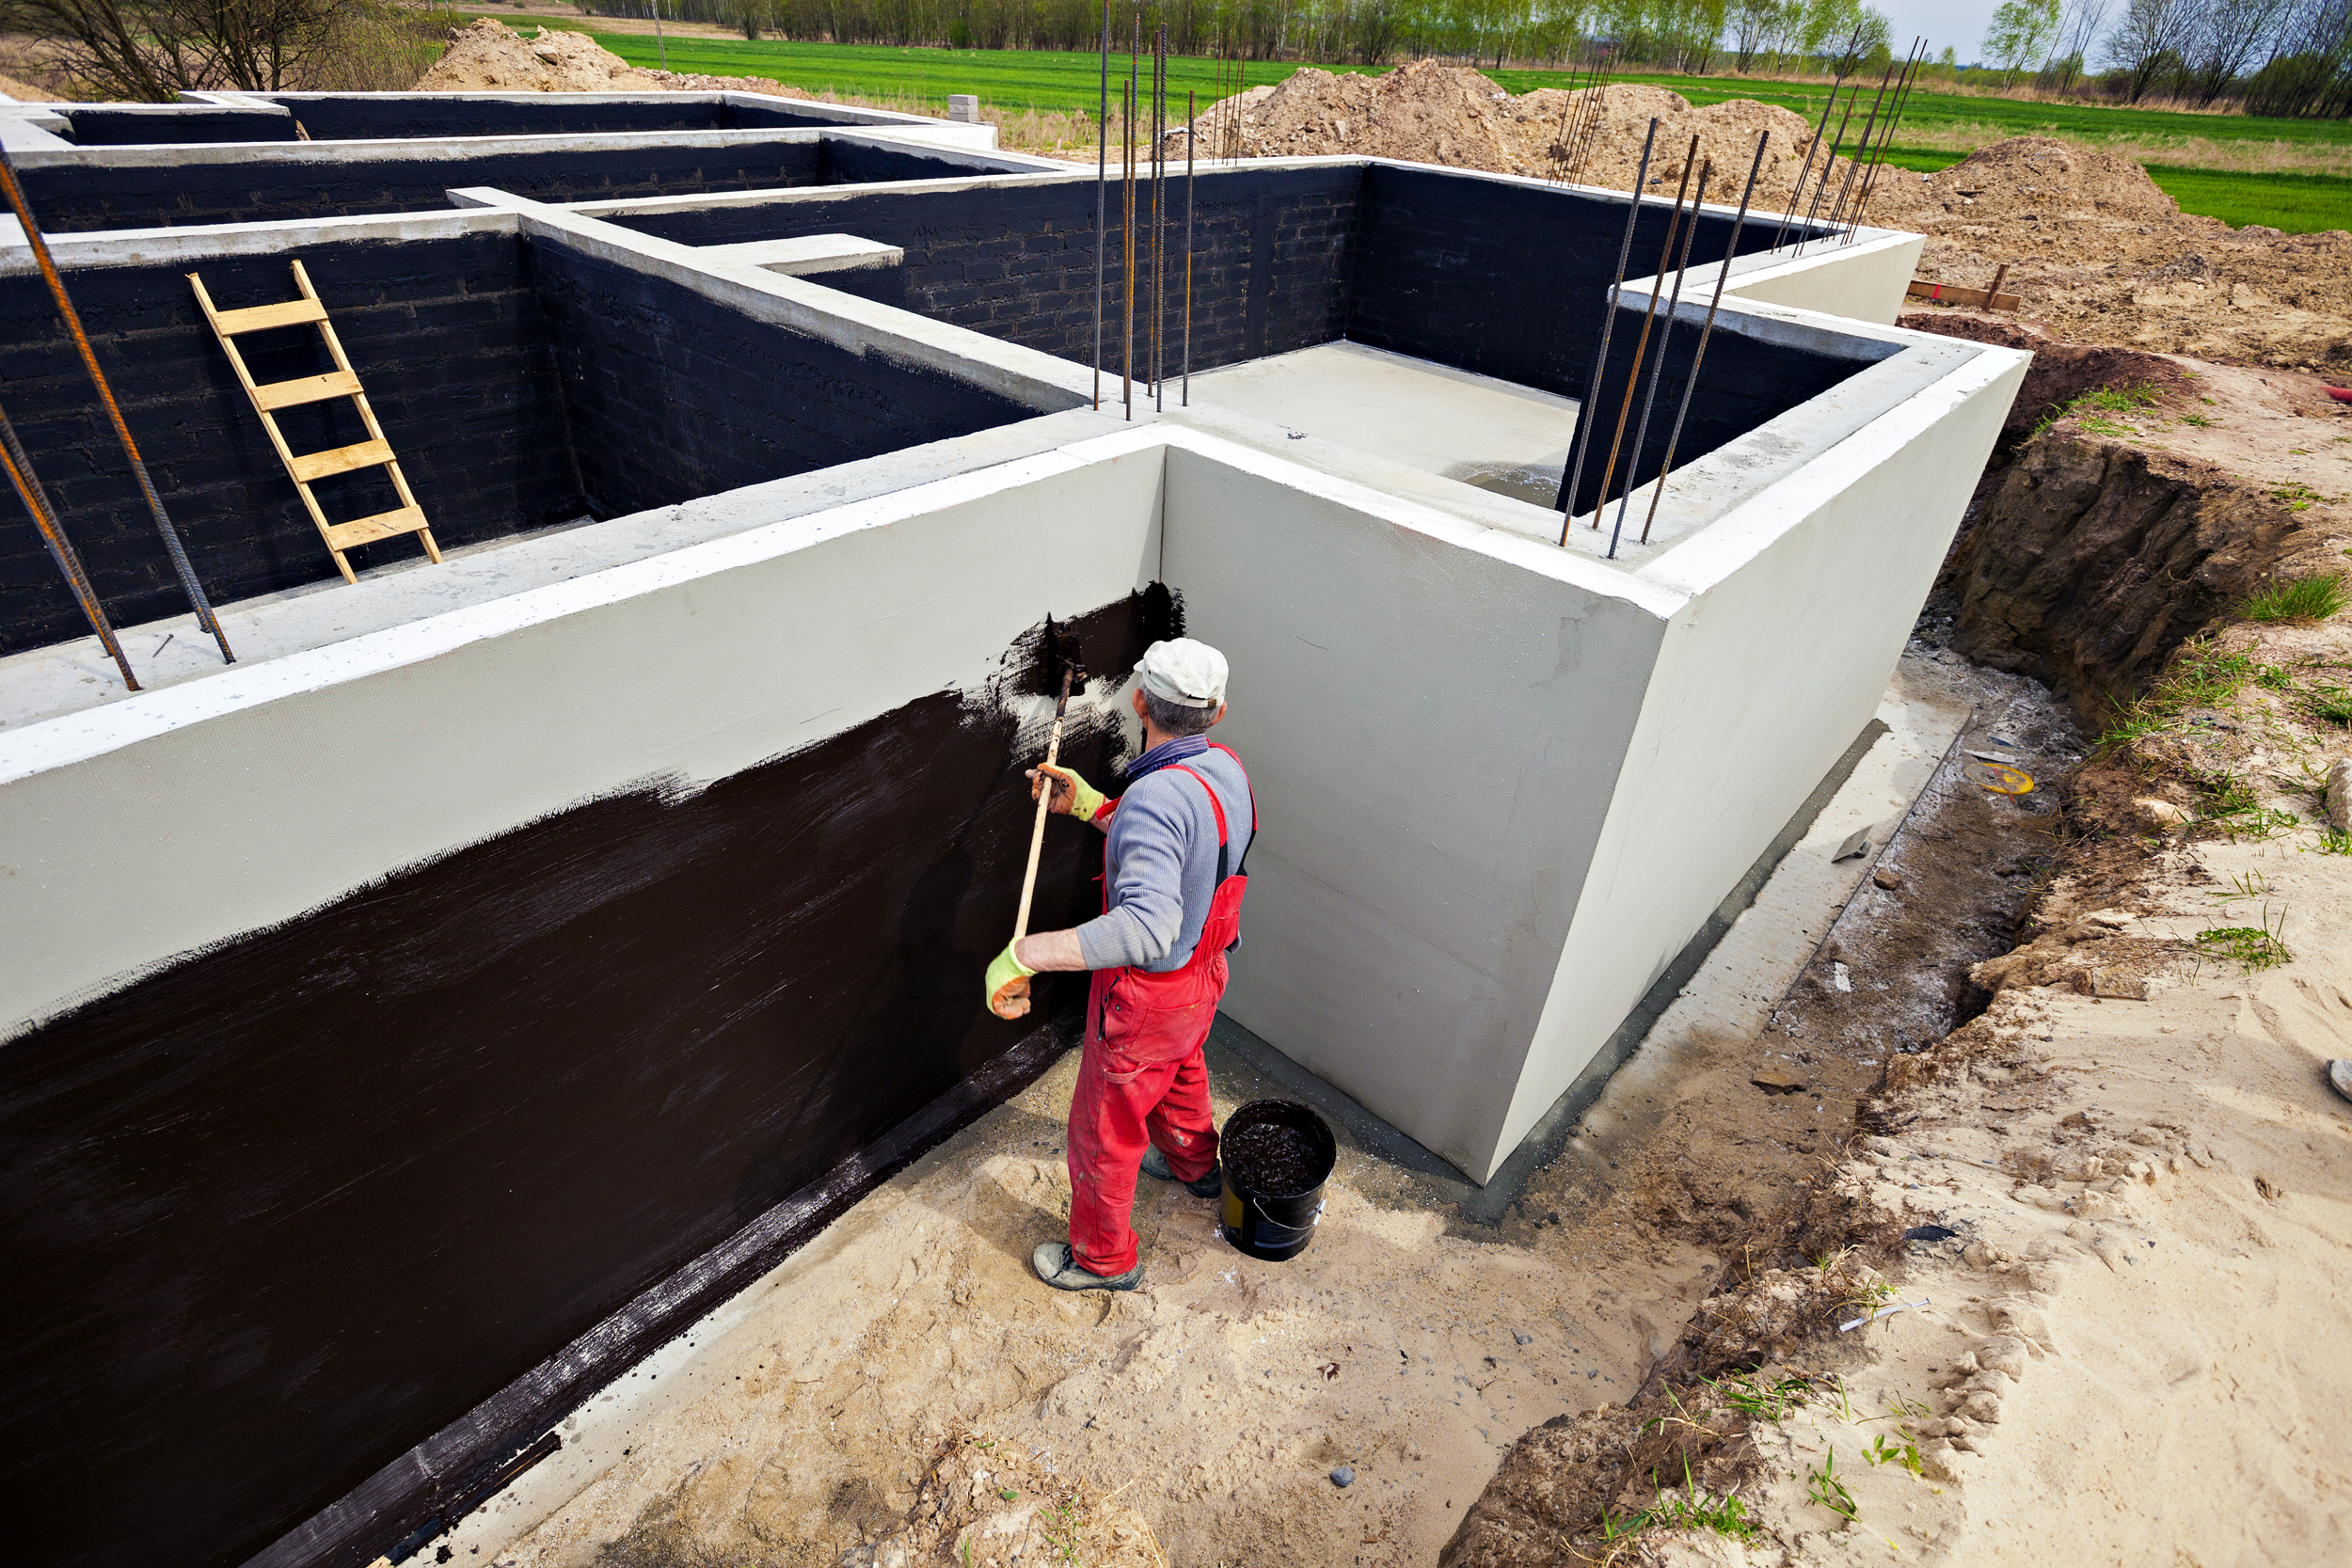 Waterproofing Contractor - Motivated Seller